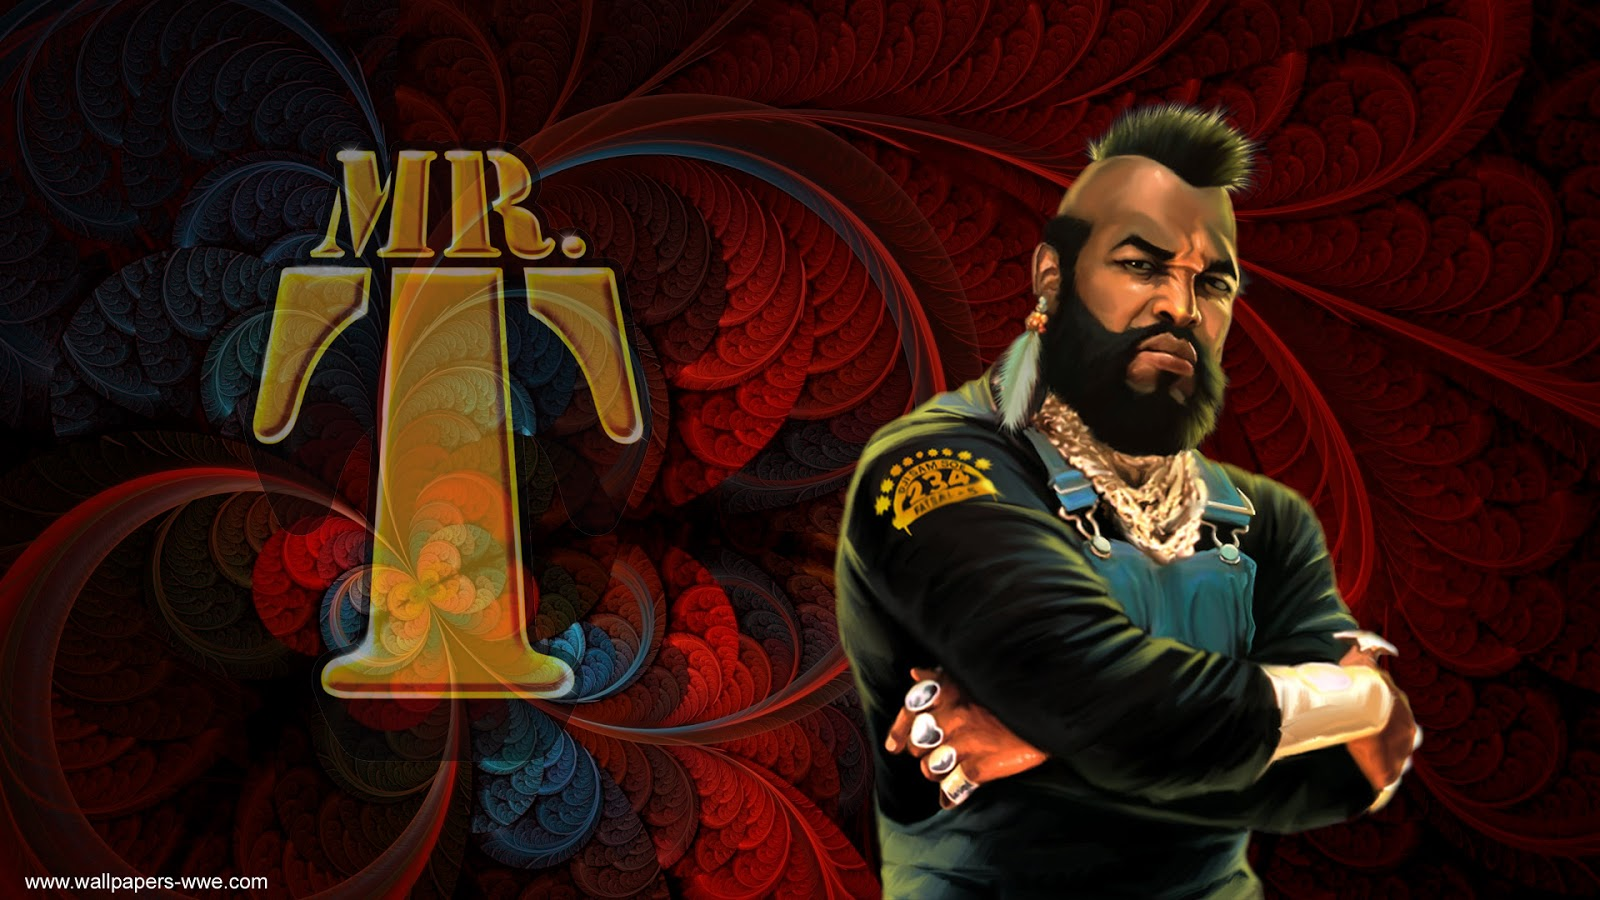 1600x900 - Mr. T Wallpapers 23